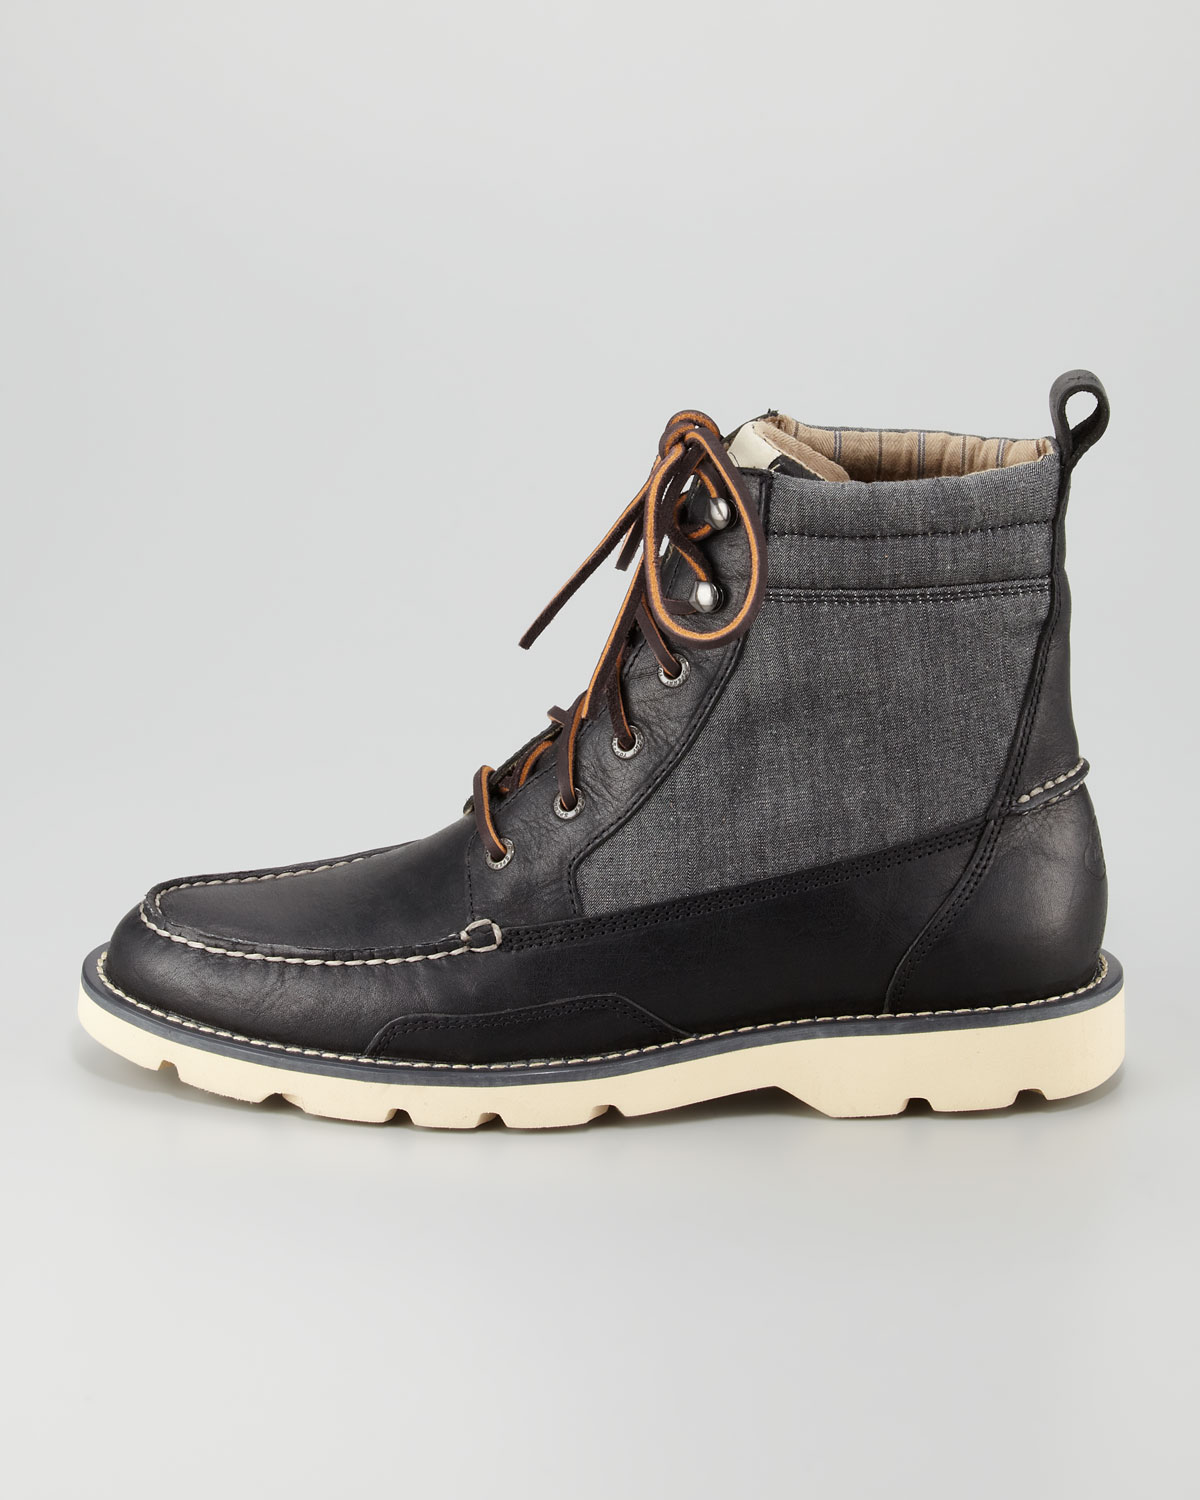 Sperry Top-Sider Cloud Shipyard Rigger